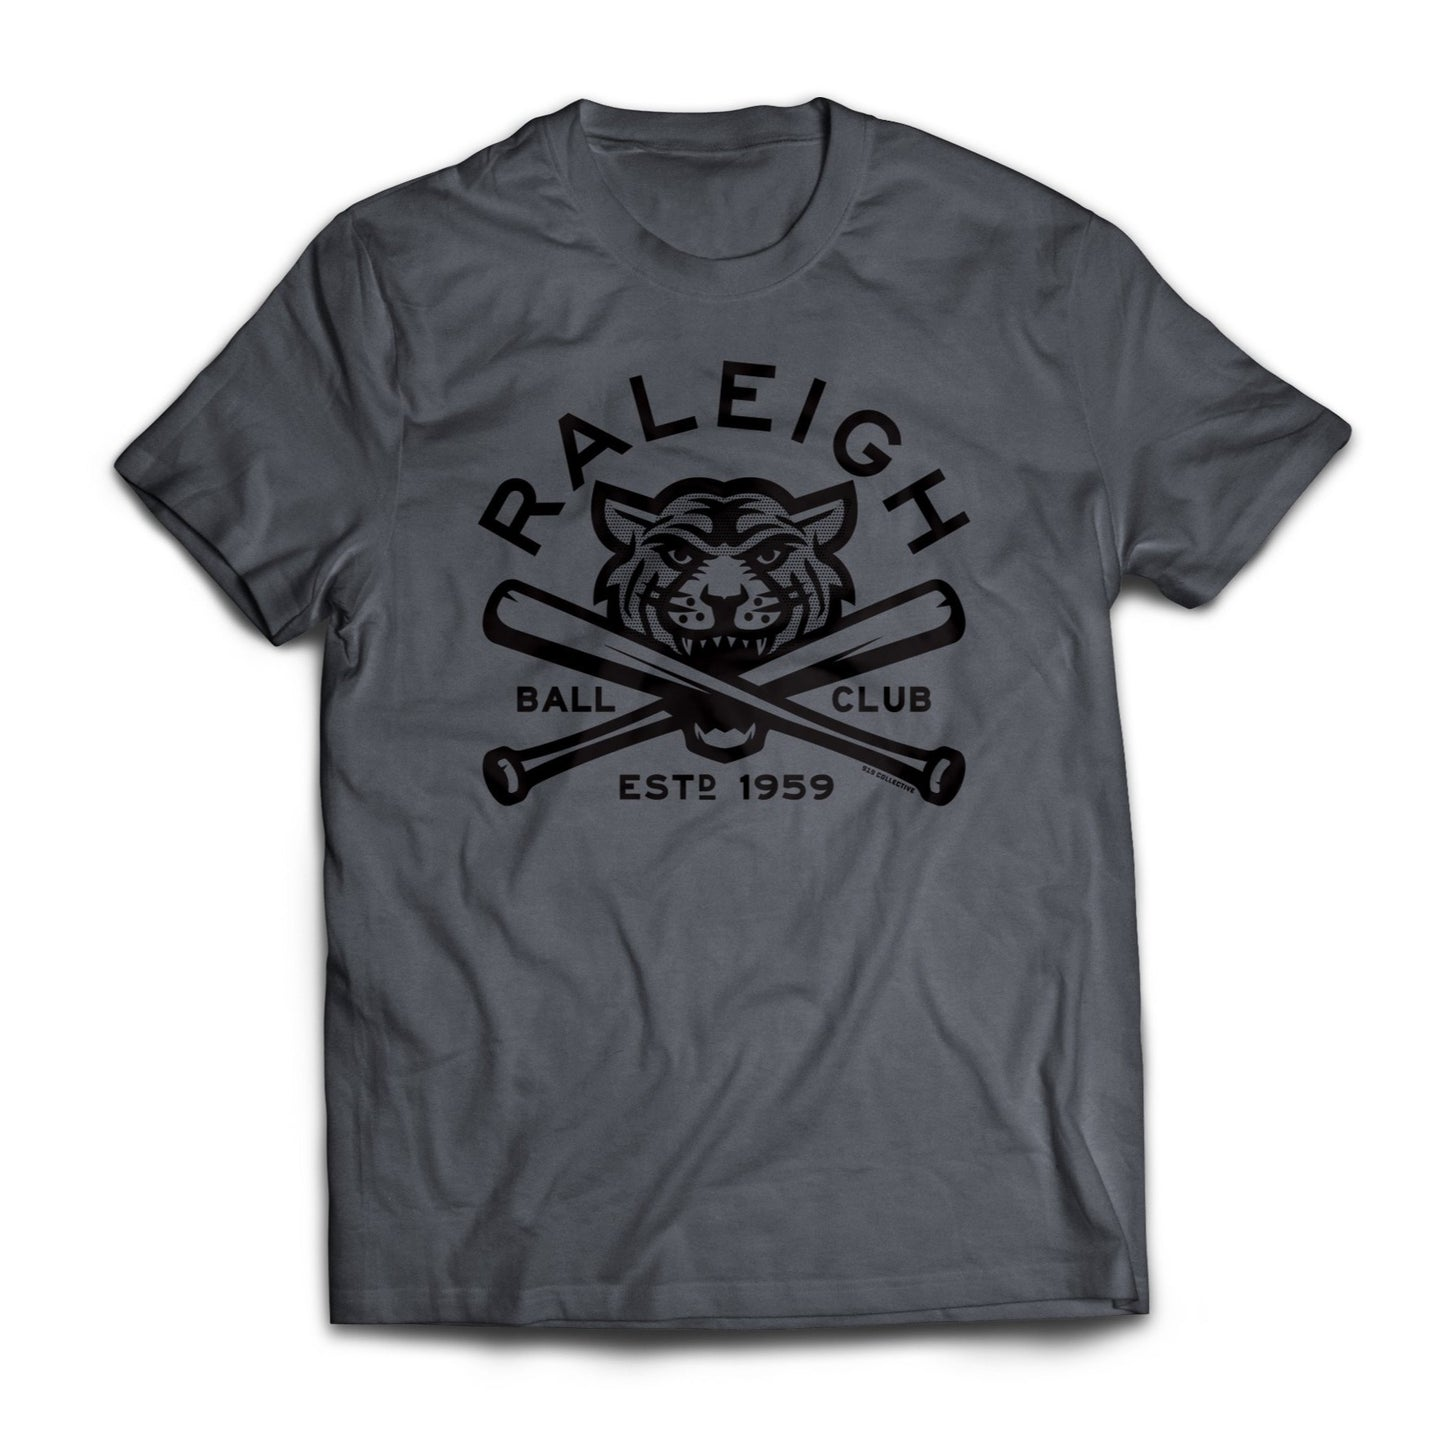 Raleigh Tigers Shirt